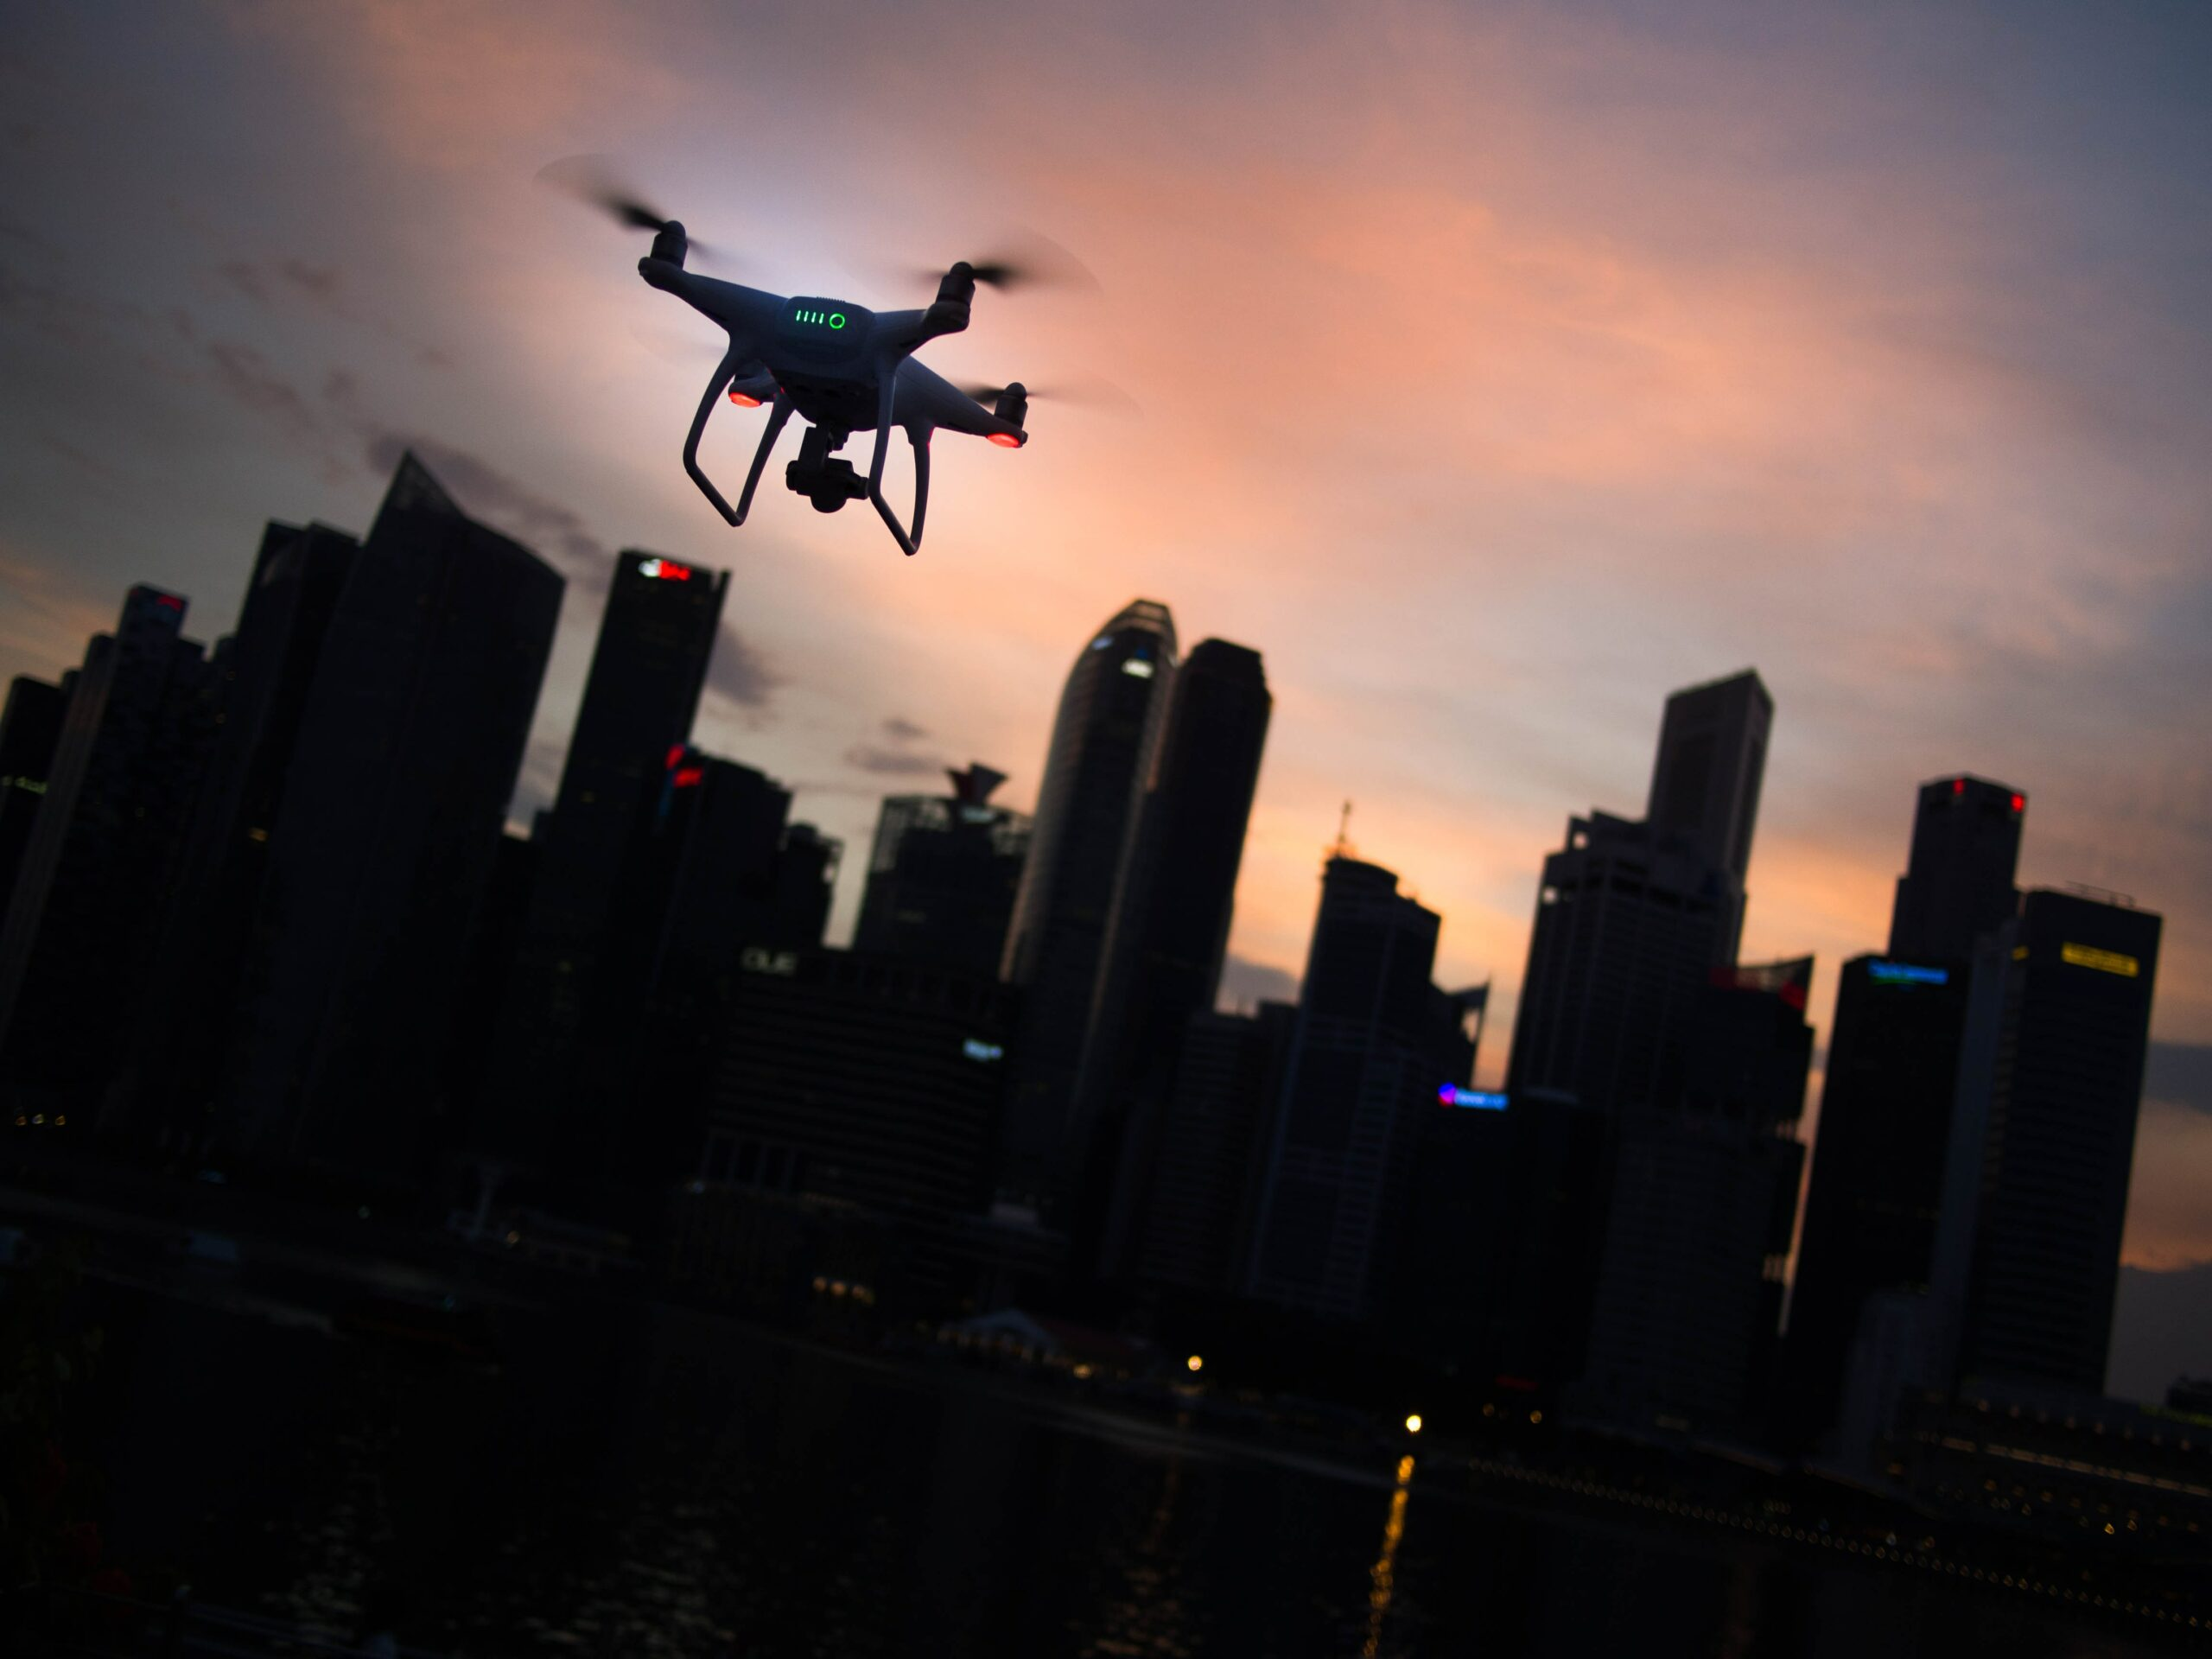 Flying drone in the night